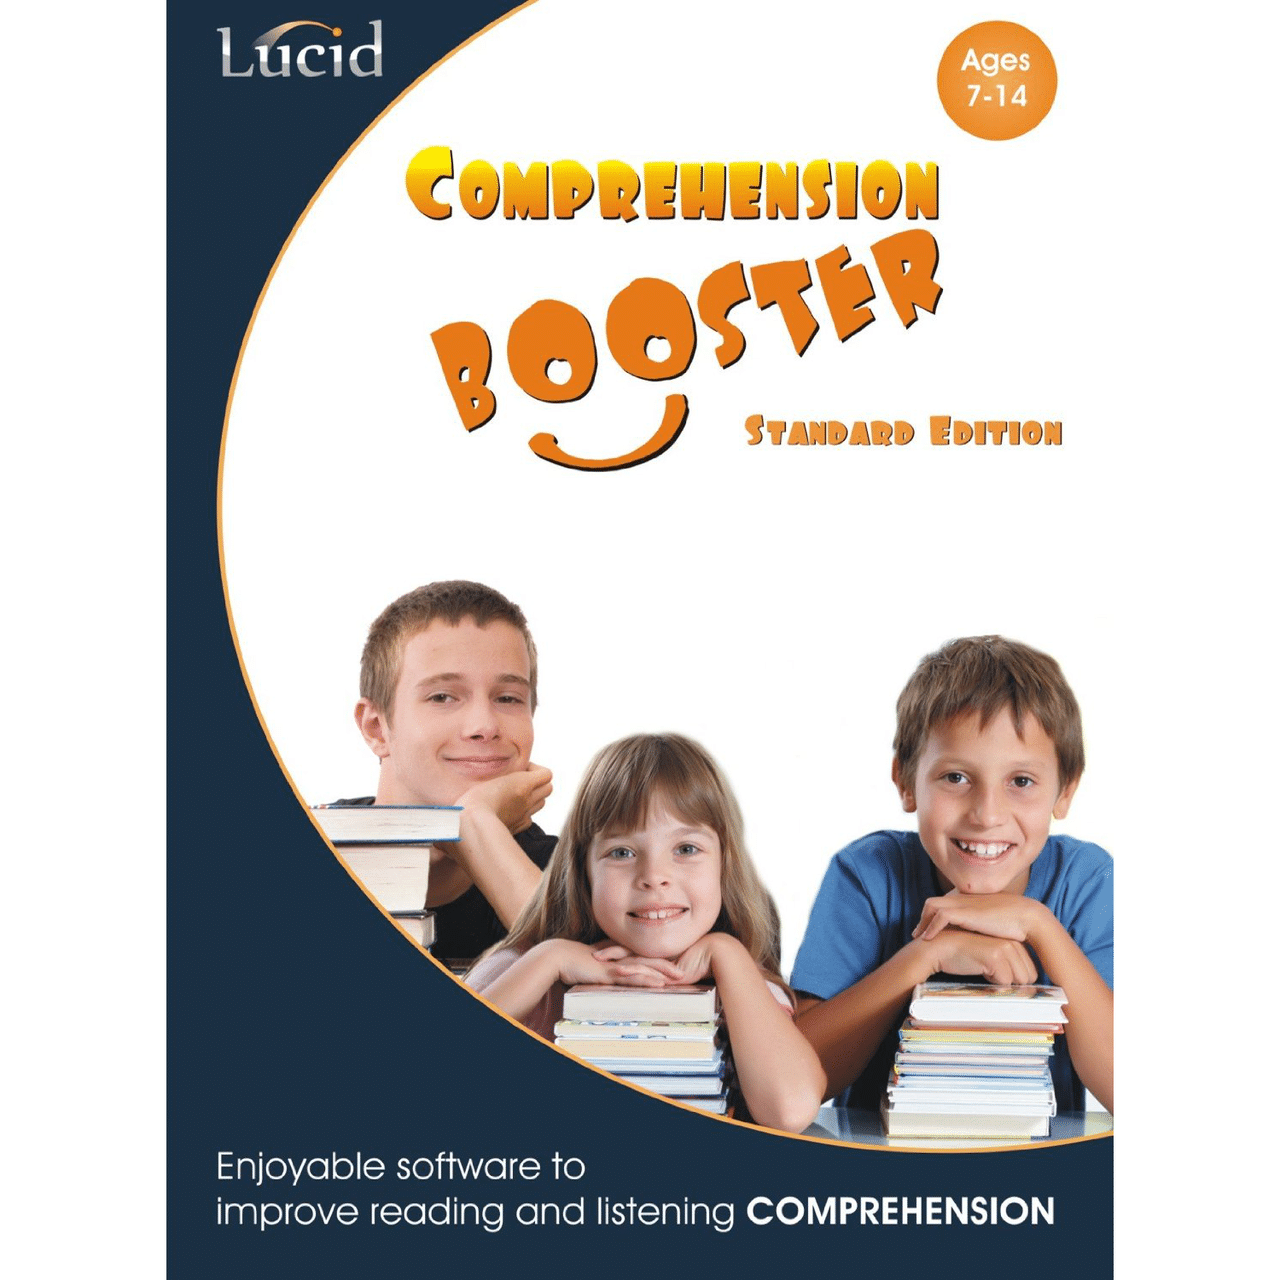 speech communication for interactive reading tutors Analysis and detection of reading miscues for interactive literacy tutors  critical components of the clt is a speech  automated reading tutors can improve.